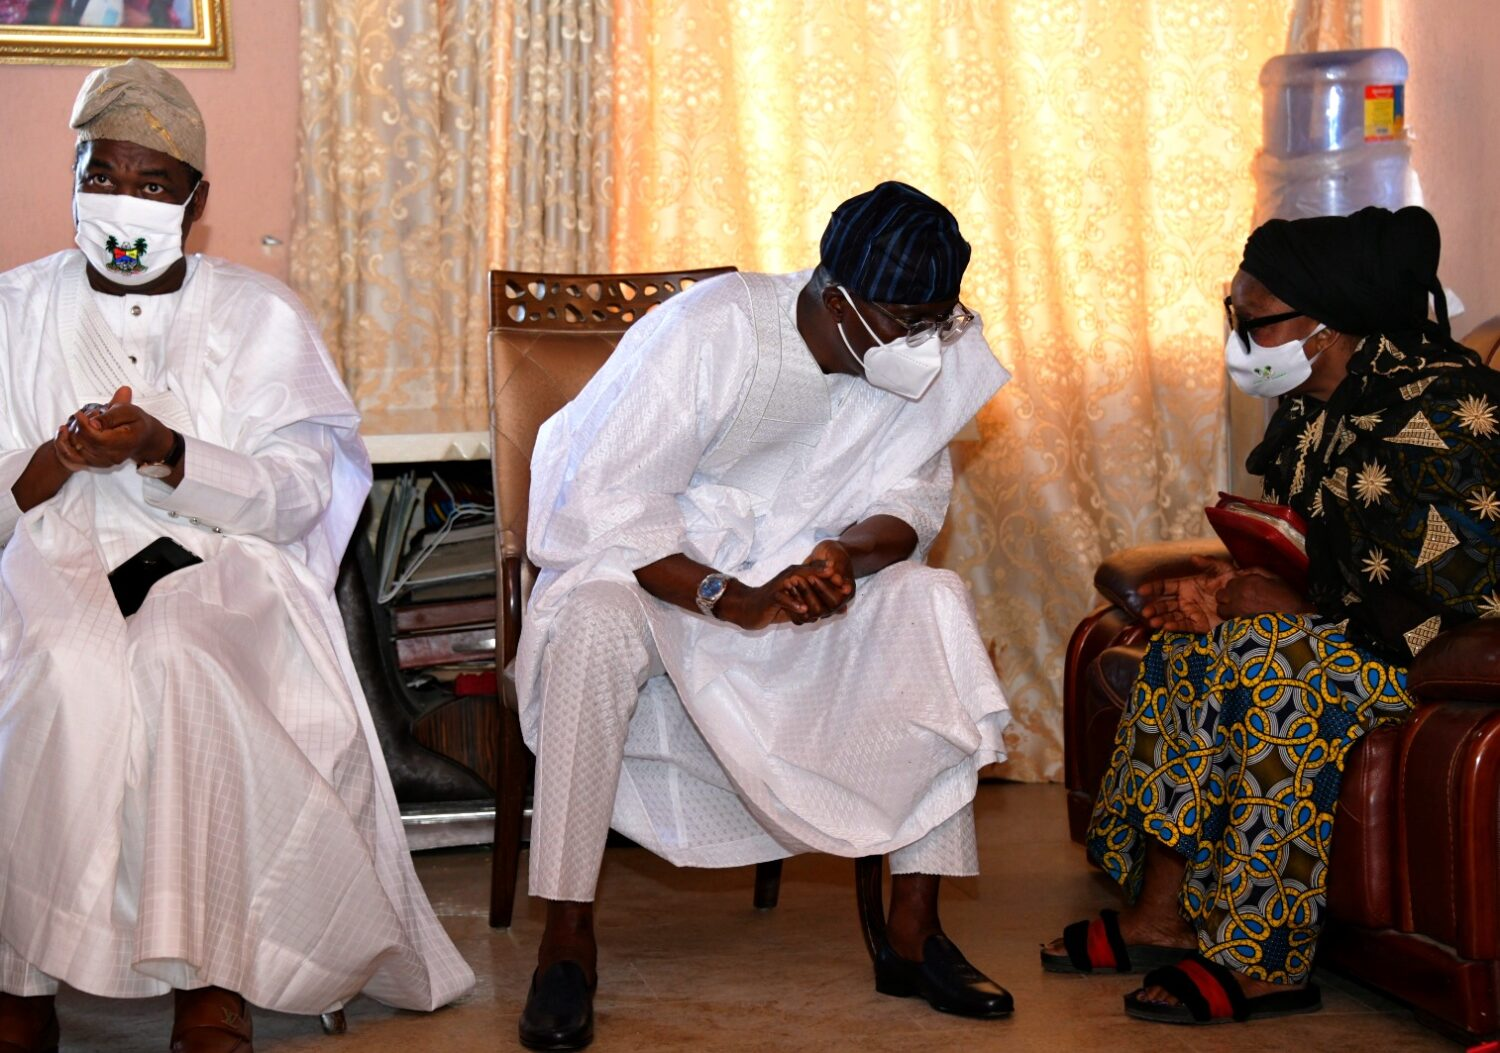 L-R: Lagos State Deputy Governor, Dr. Obafemi Hamzat; Governor Babajide Sanwo-Olu and wife of the deceased, Mrs. Jumoke Rasak, during a condolence visit to the family of late Chief Lanre Razak, on Sunday, August 16, 2020.